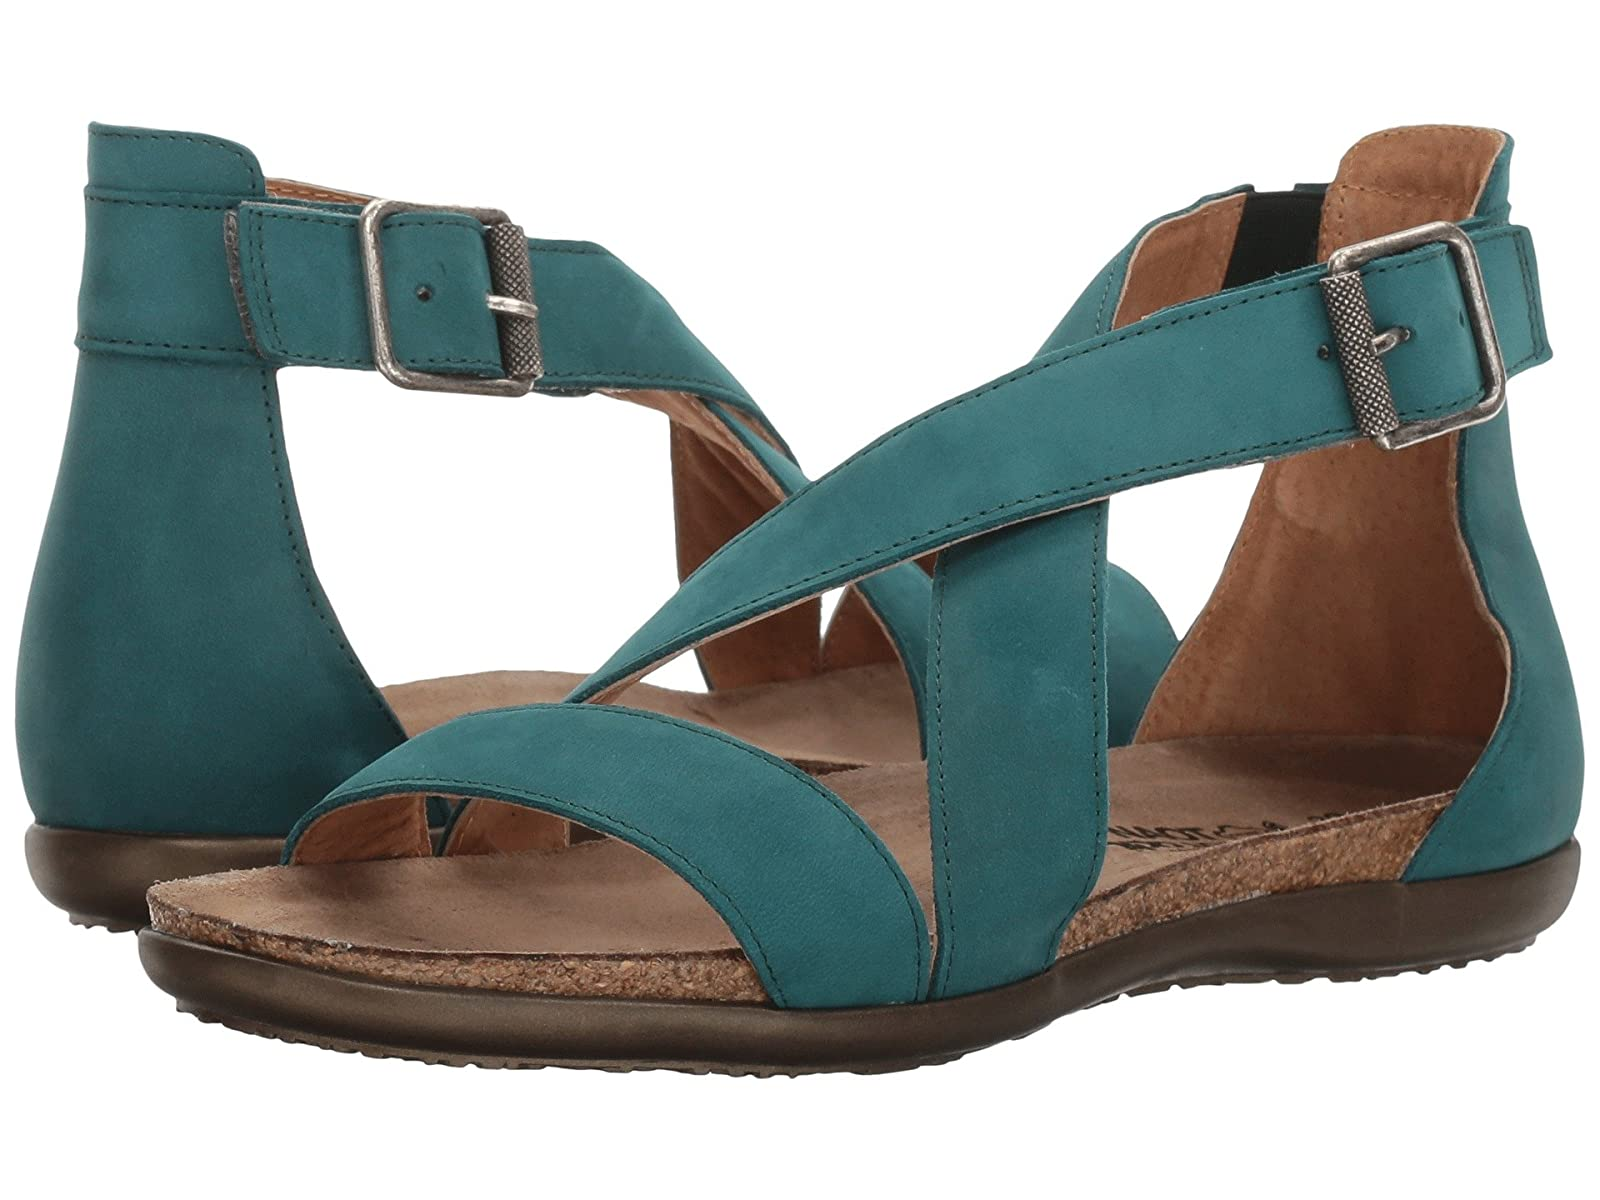 Naot RiannaAtmospheric grades have affordable shoes